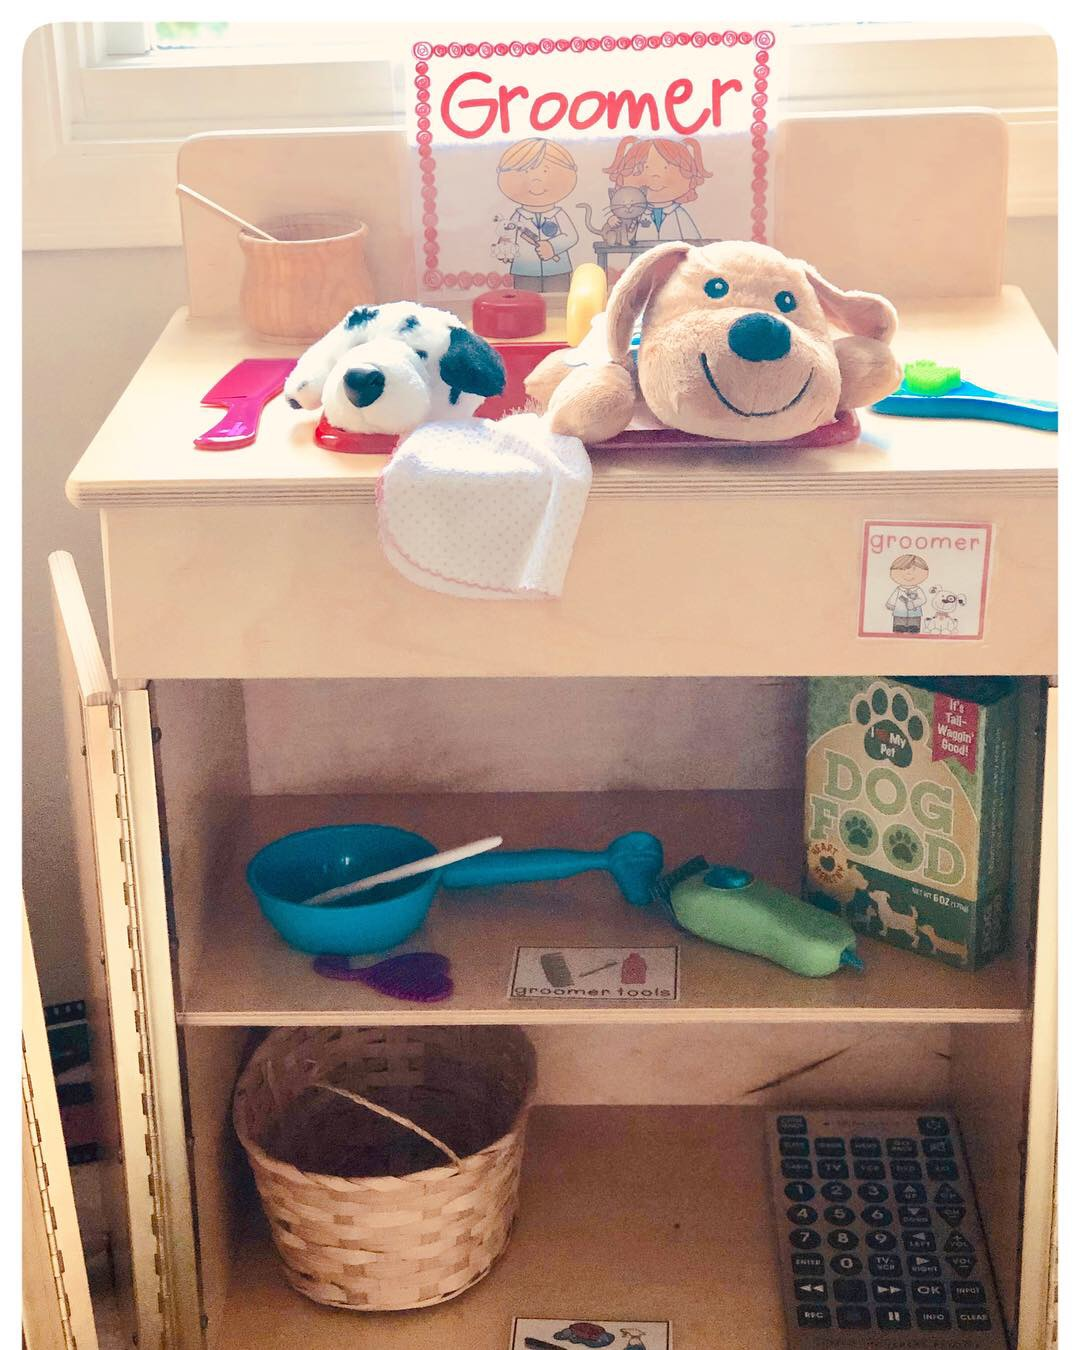 🐕 Pet Store🐈  Our Dramatic Play center has transformed into a Pet Store. They will be learning through play as they write their shopping lists, read labels on the shelves, and price tags as they shop. There's even an adoption center to pick a pet of their own.  Children are building so many skills during pretend play including social, emotional, math, reading, and writing.